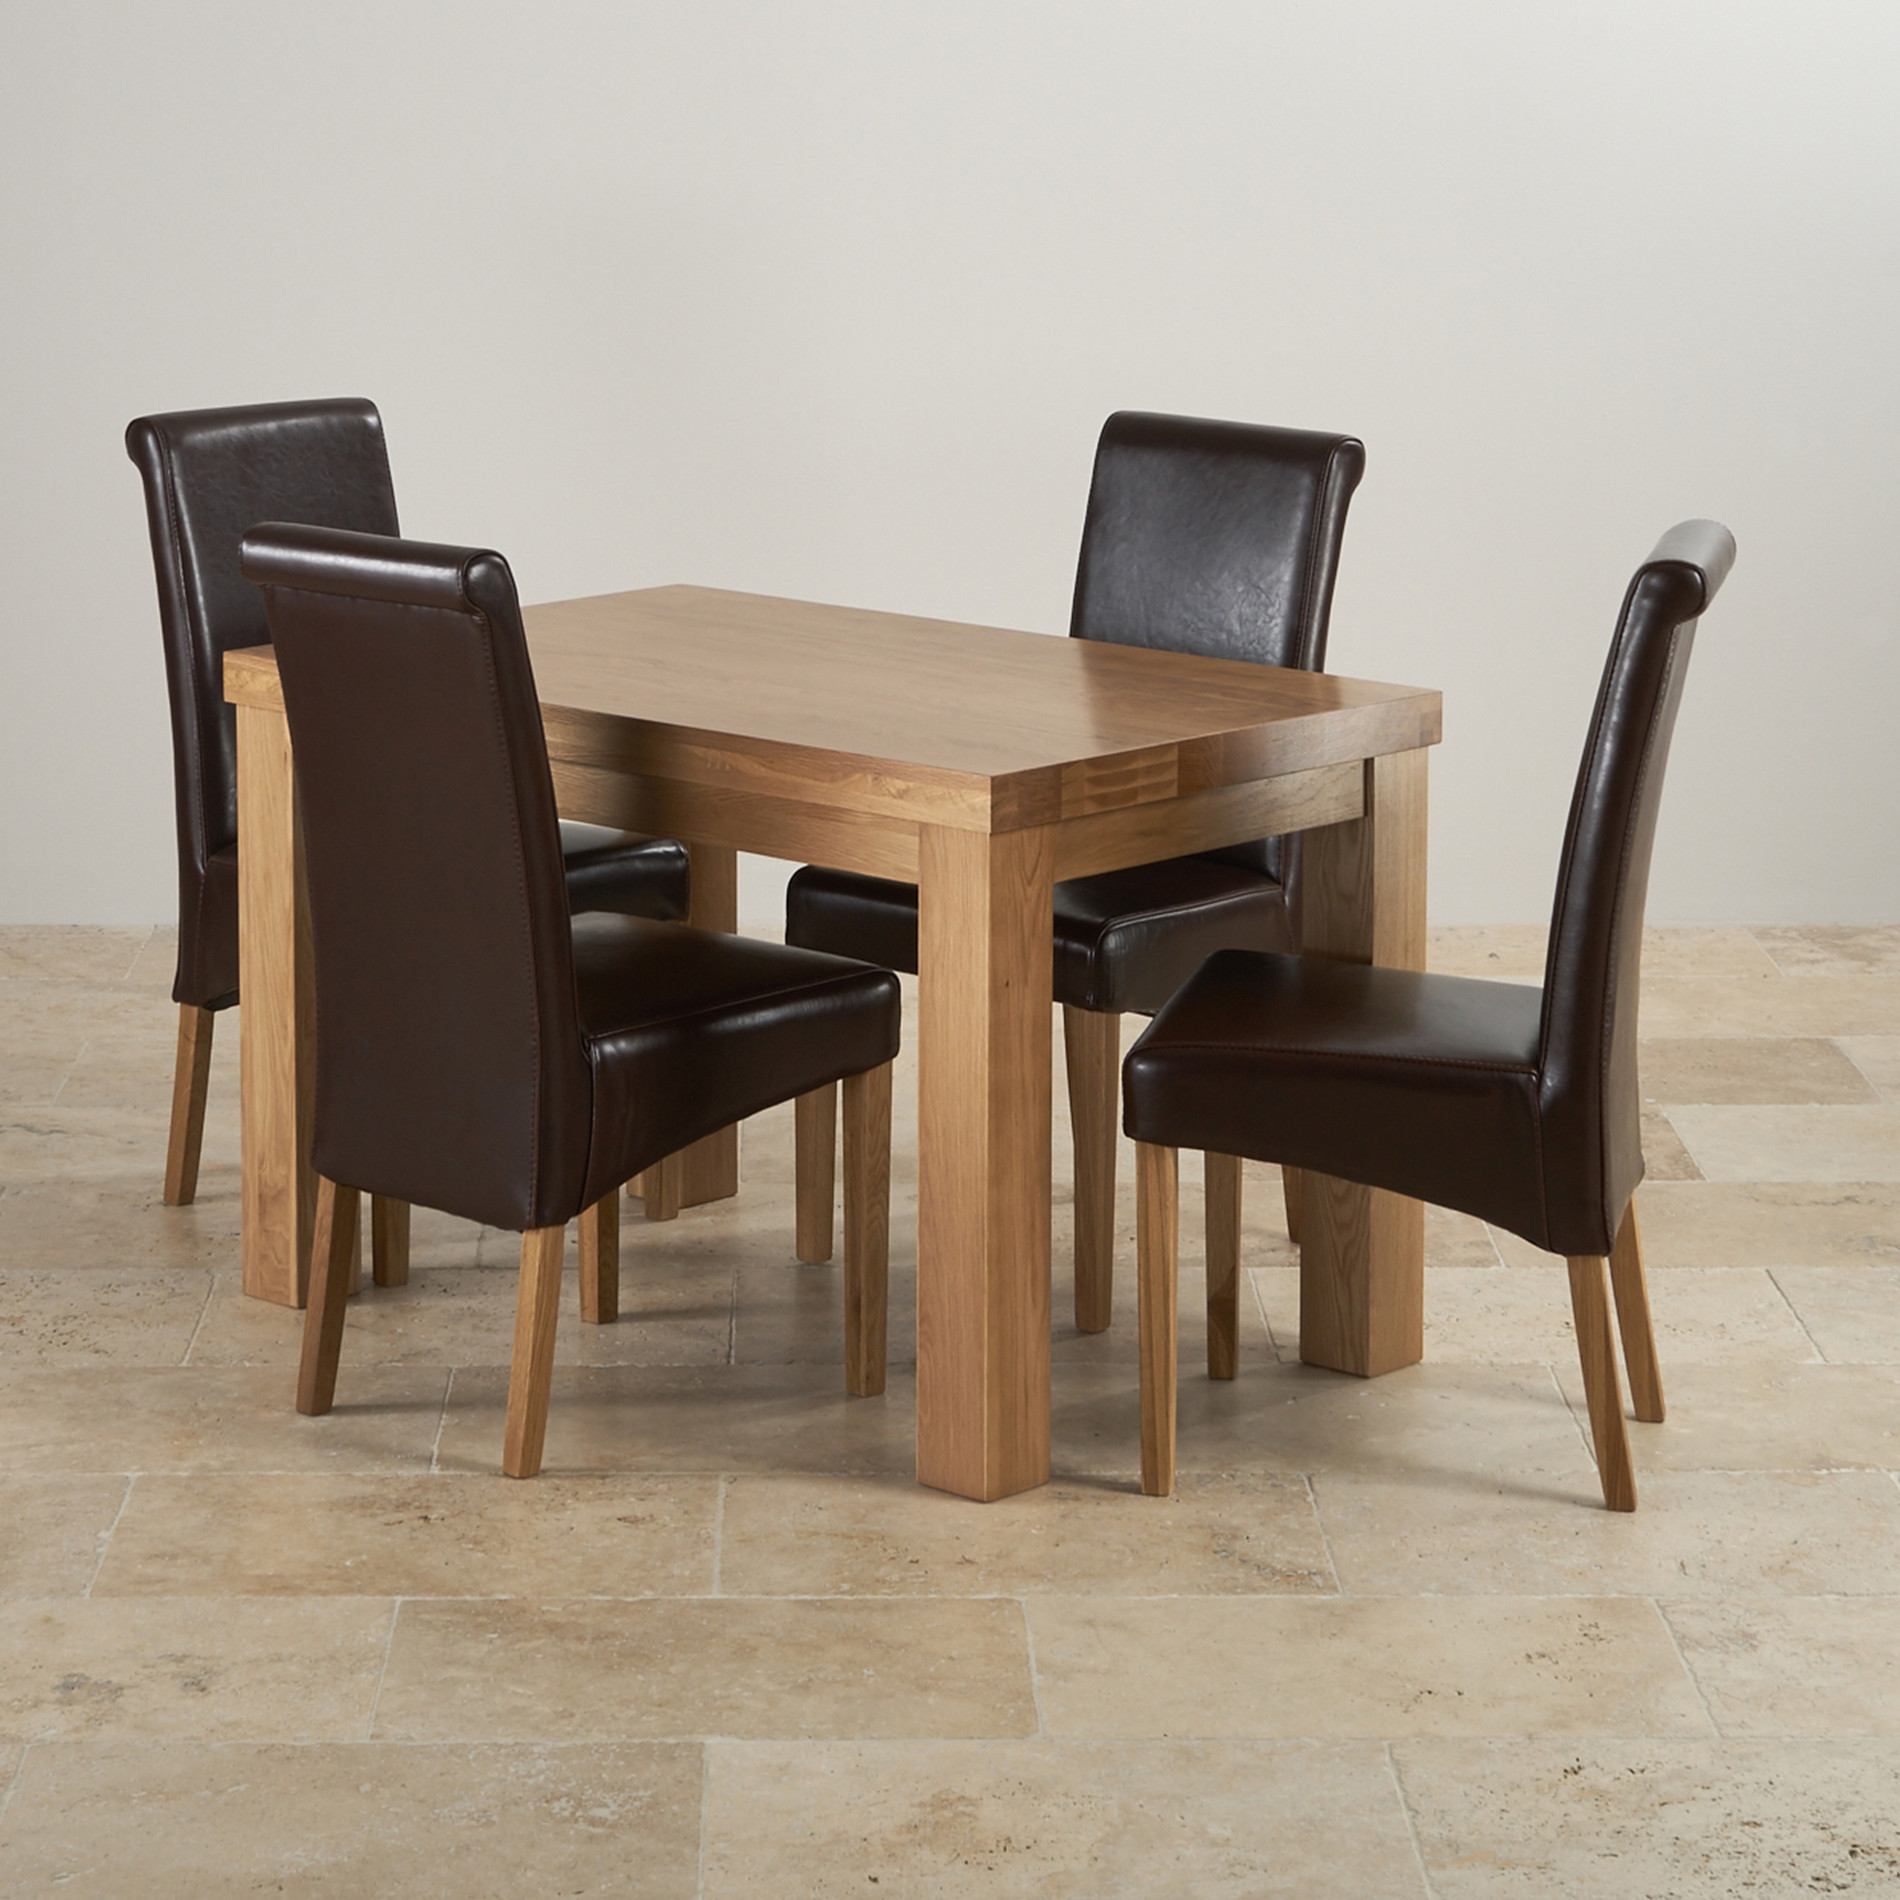 Dining Table With Two Chairs: Chunky Solid Oak Dining Set In Oak: 4ft Table + 4 Chairs